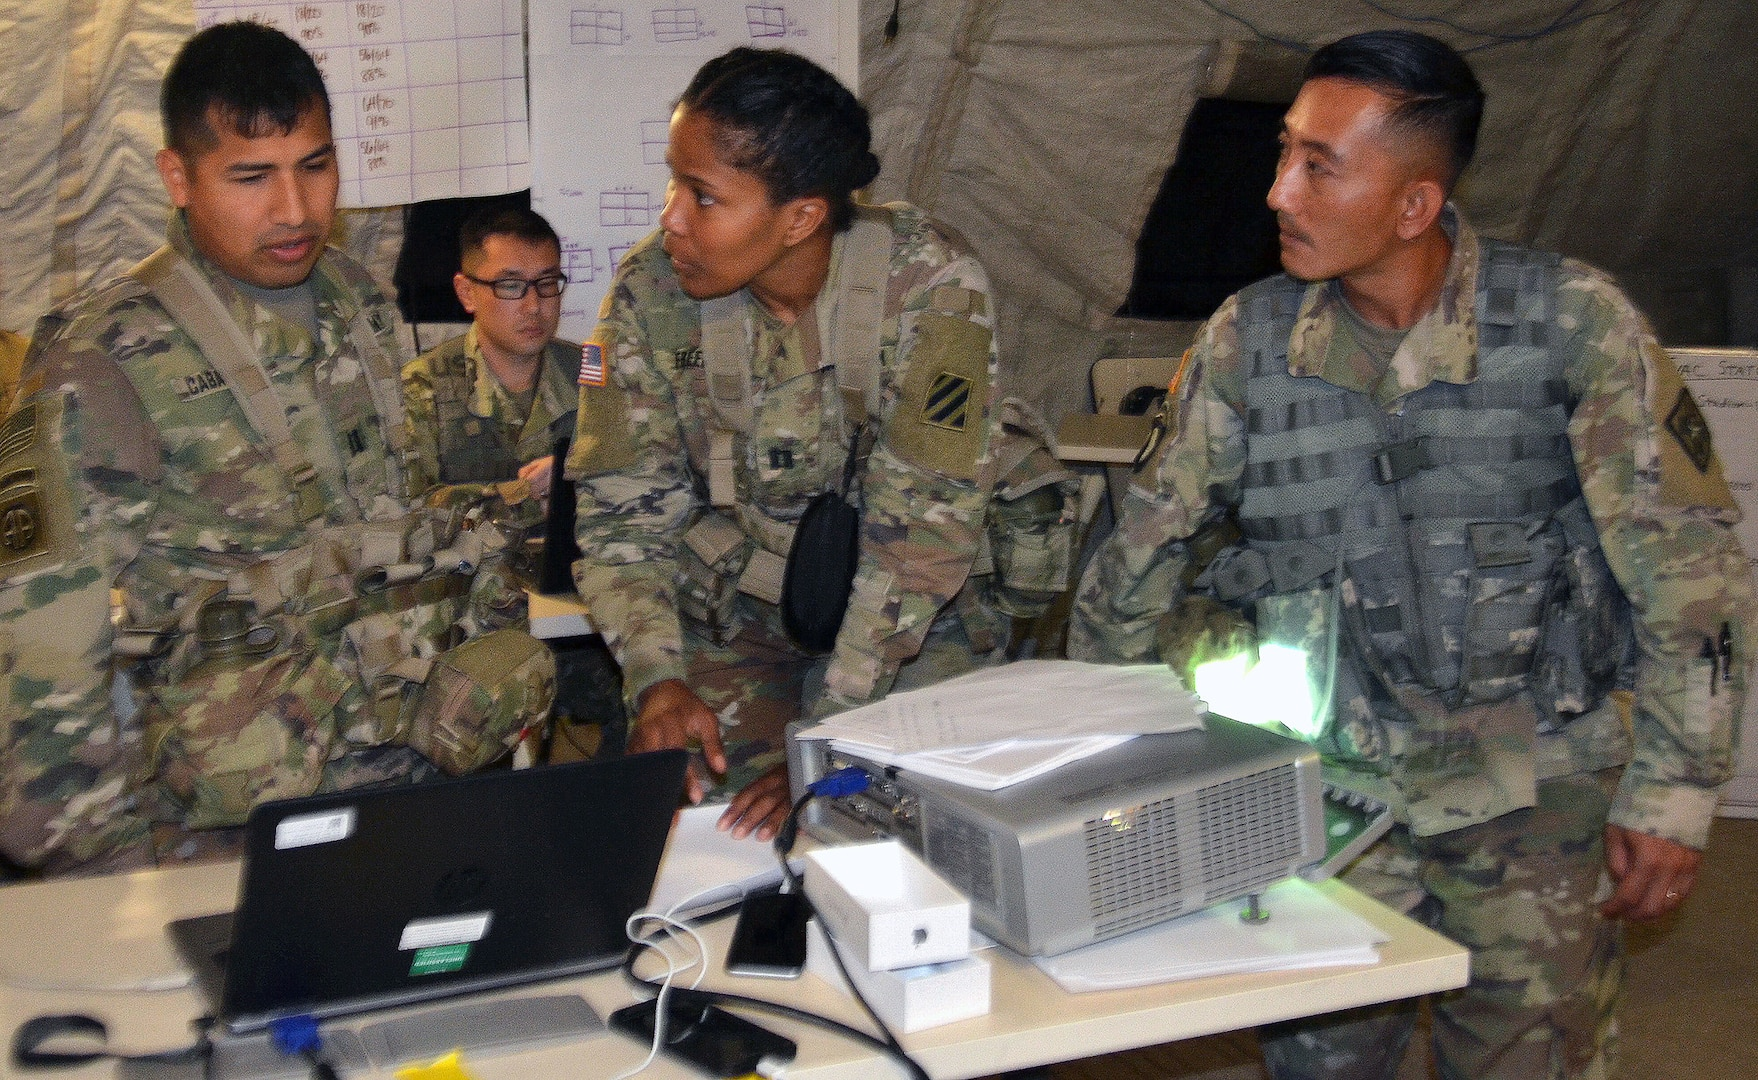 Army Medical Department Center & School, Health Readiness Center of Excellence students participate in a field training exercise for the Captains Career Course at Joint Base San Antonio-Camp Bullis May 7. From left to right are Capt. Jonatan Caballero, 3rd Cavalry Regiment medical support operations officer at Fort Hood, Texas; Capt. Romia Freeman, 3rd Combat Aviation Brigade behavioral health officer at Hunter Army Airfield, Ga.; and Chief Warrant Officer Phoutthasone Inthalangsy, Medical Education and Training Campus chief of curriculum support at Joint Base San Antonio-Fort Sam Houston. During the exercise, the students were part of a medical brigade putting together a disaster relief plan to support and help civil authorities responding to a hurricane that hit Houston. Students in the nine-week Captains Career Course learn about and undergo hands-on training on concepts, processes and skills to prepare them to lead medical units in support of ground combat operations and assisting civil authorities in emergency situations.